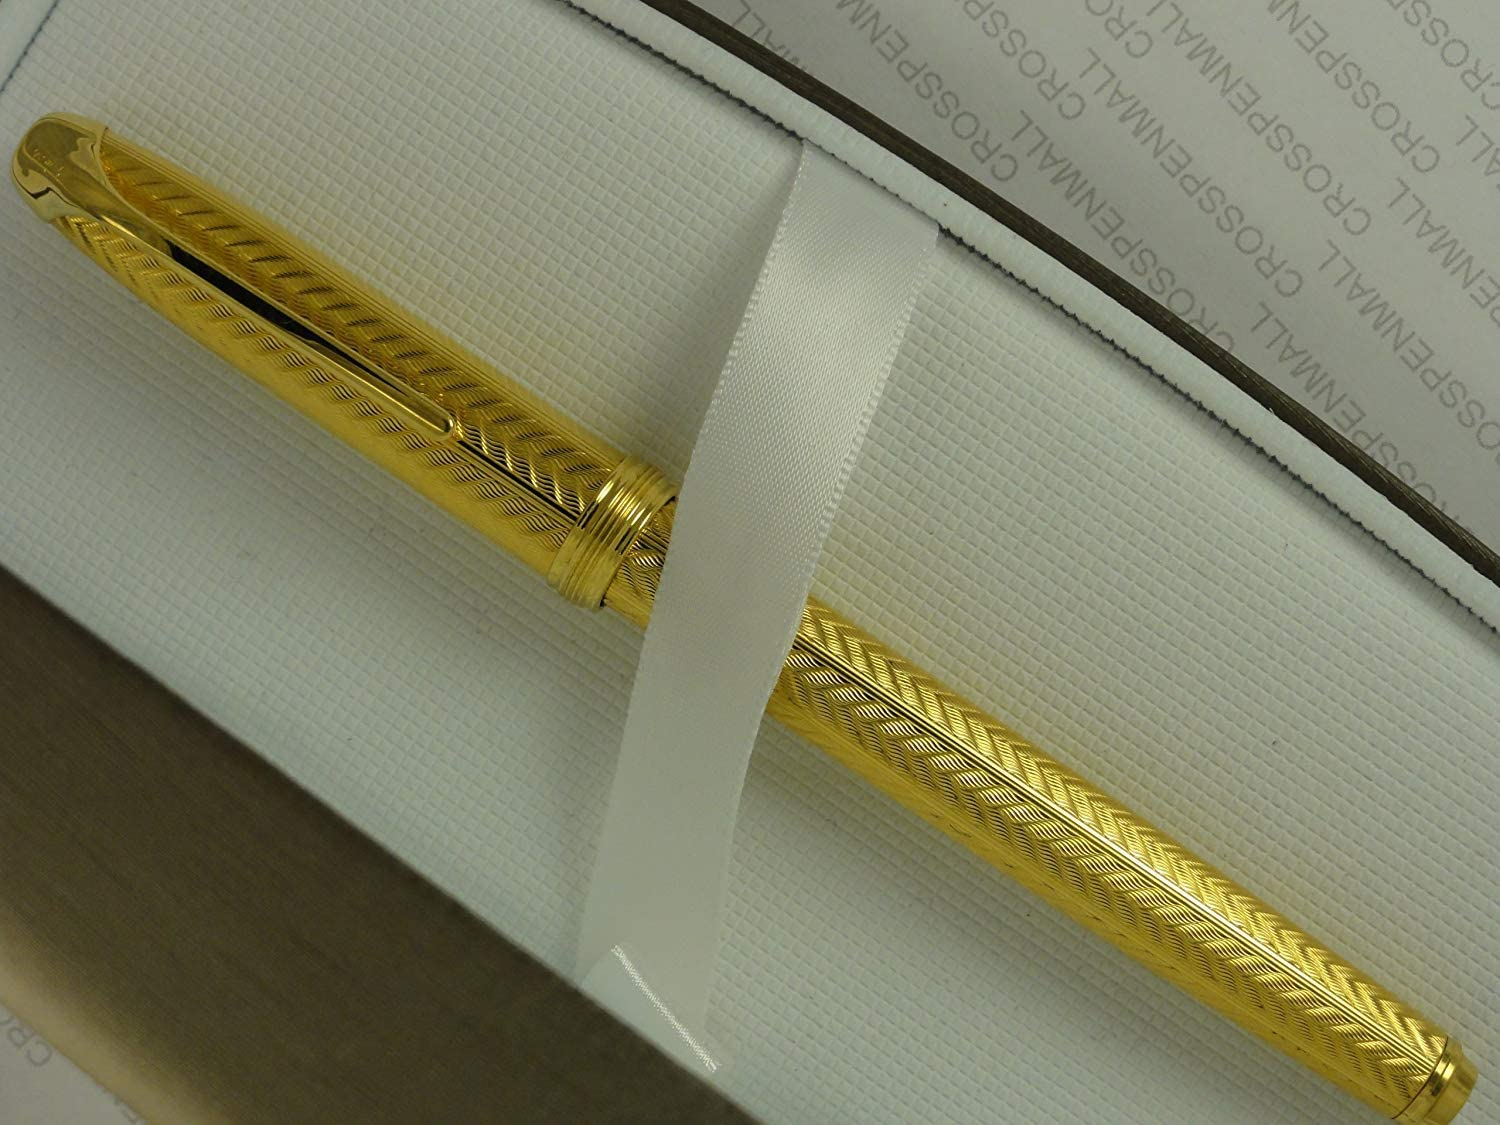 Cross Made in the USA Pinnacle 22K Gold Fountain Pen with Hallmarked Solid 18KT Gold Two Tone Broad Nib.